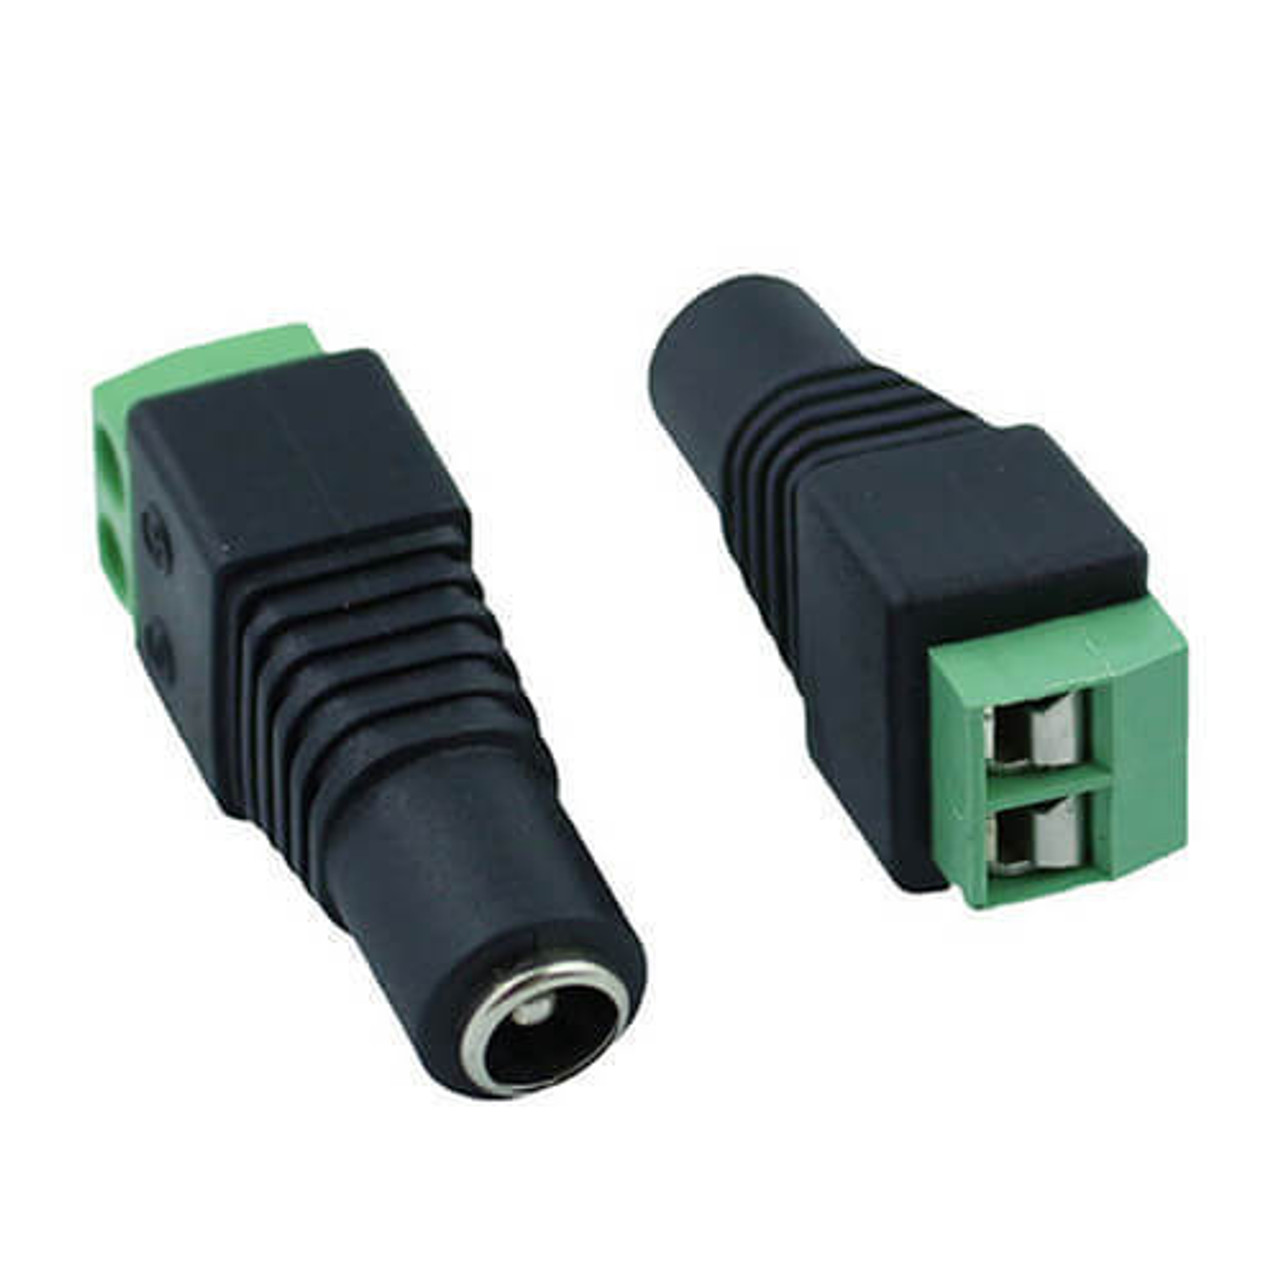 COAXIAL POWER PLUG - 2.5mm x 5.5mm to Solderless Terminal - 5 Pk